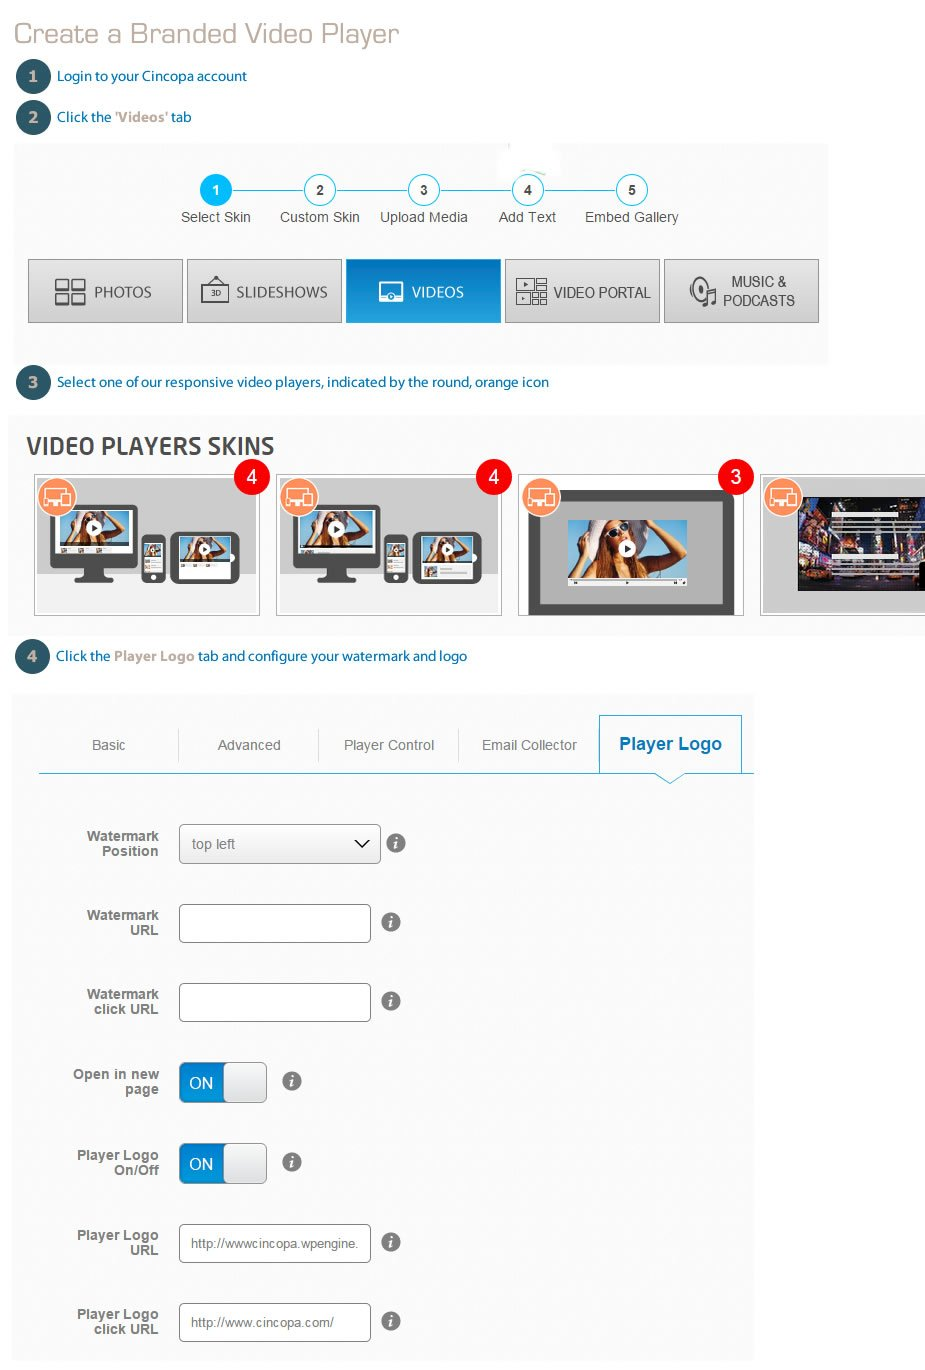 Create branded video players with Cincopa